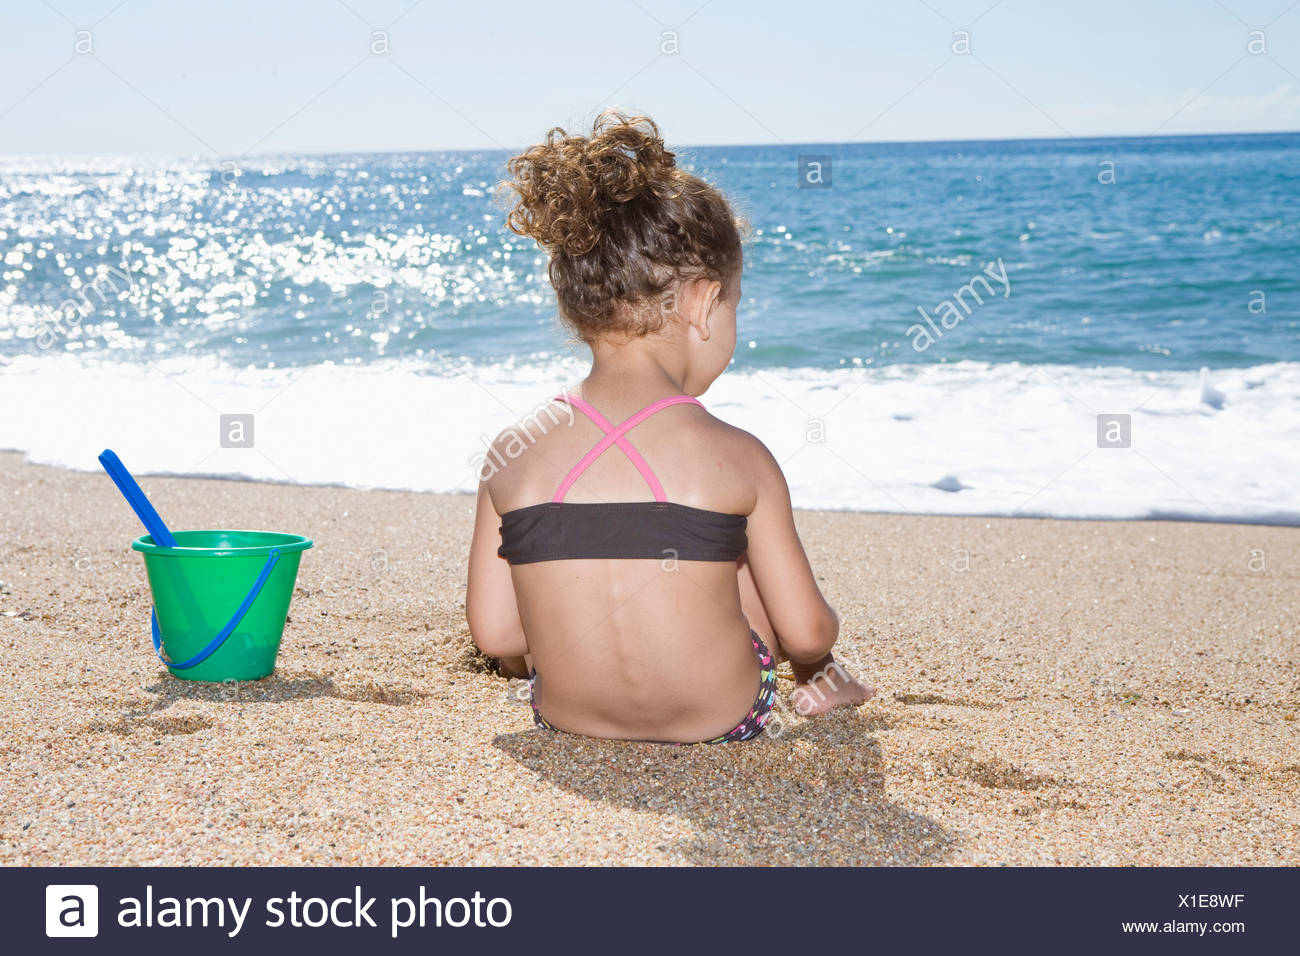 France, Corsica, Girl (2-3) siting on beach, rear view - Stock Image